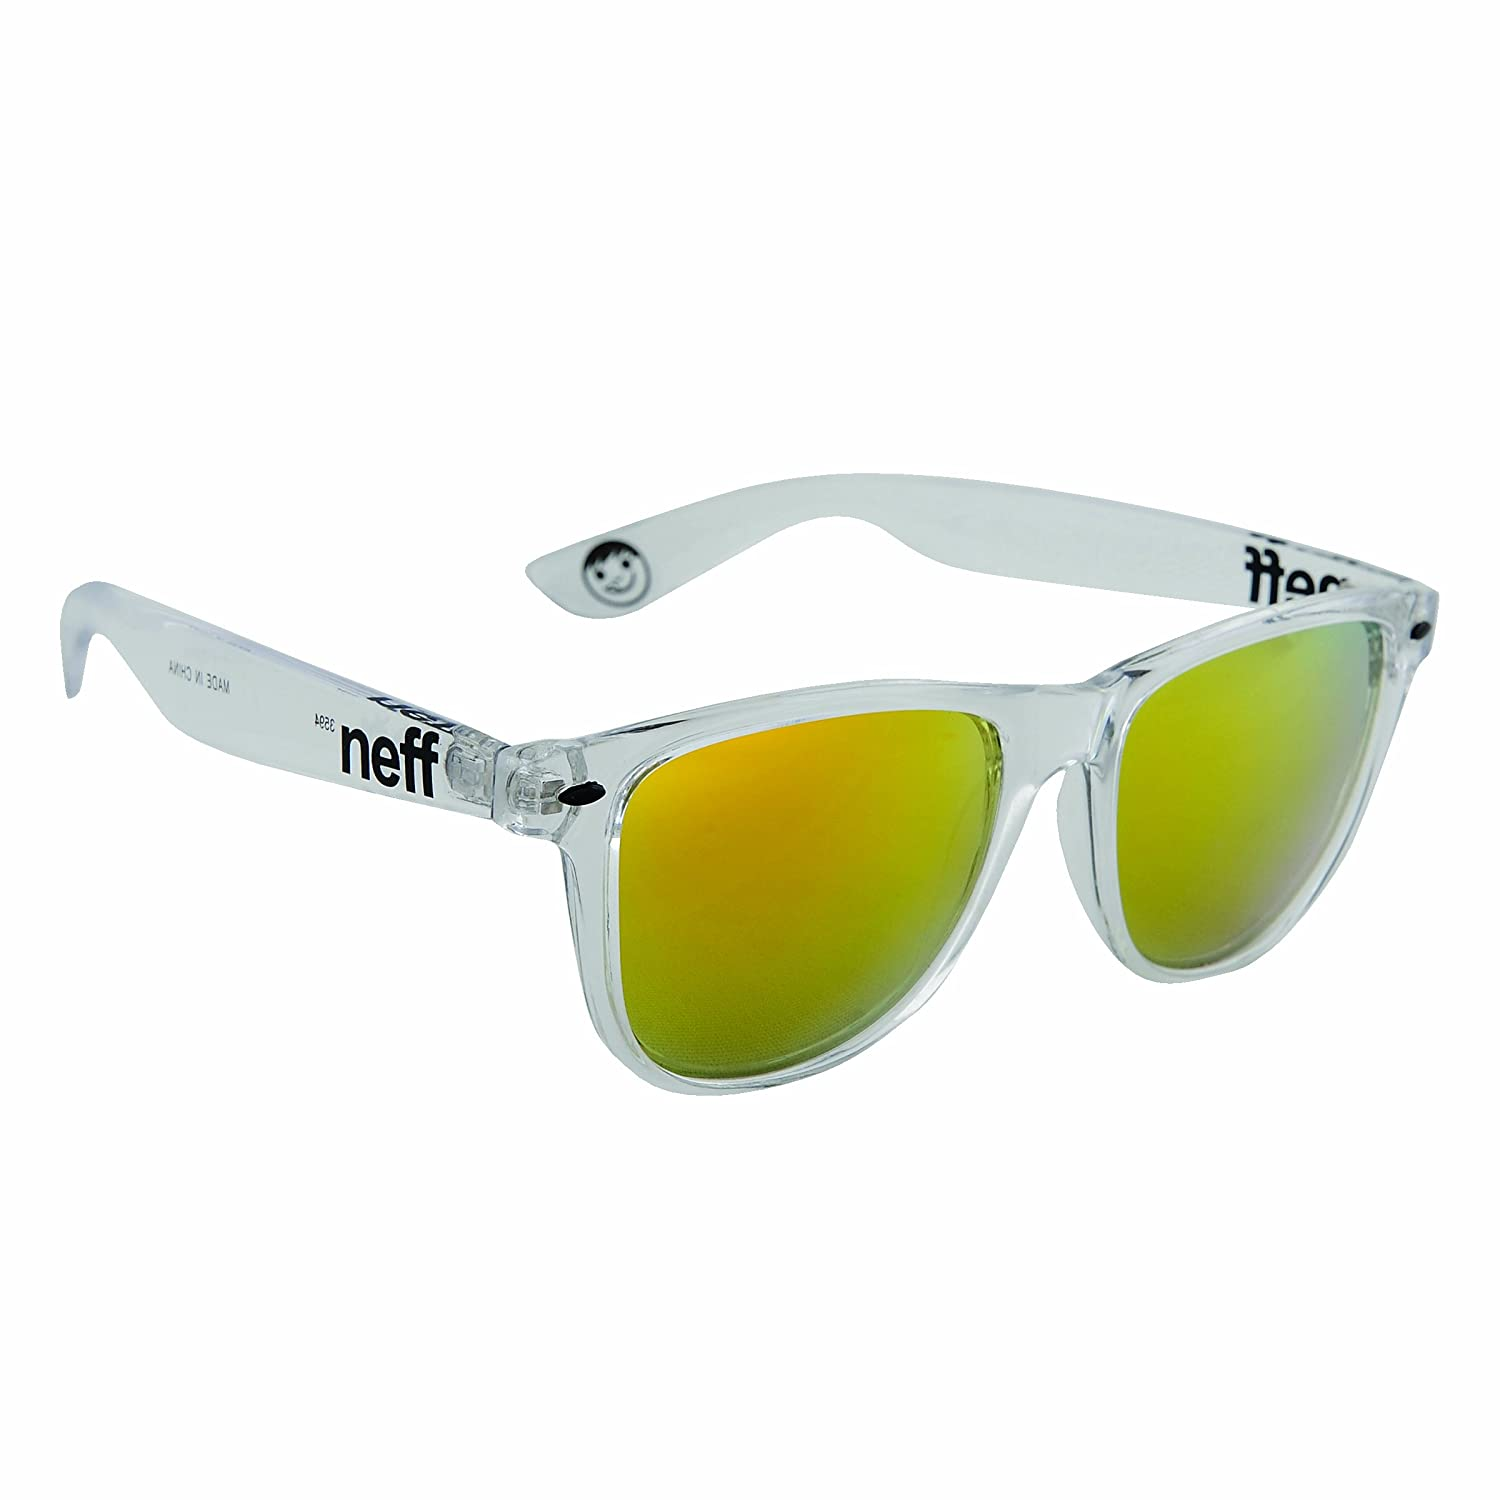 e2d8b56cf4 Amazon.com  Neff Daily Shades Unisex Sunglasses with Cloth Pouch for Men  and Women  Shoes